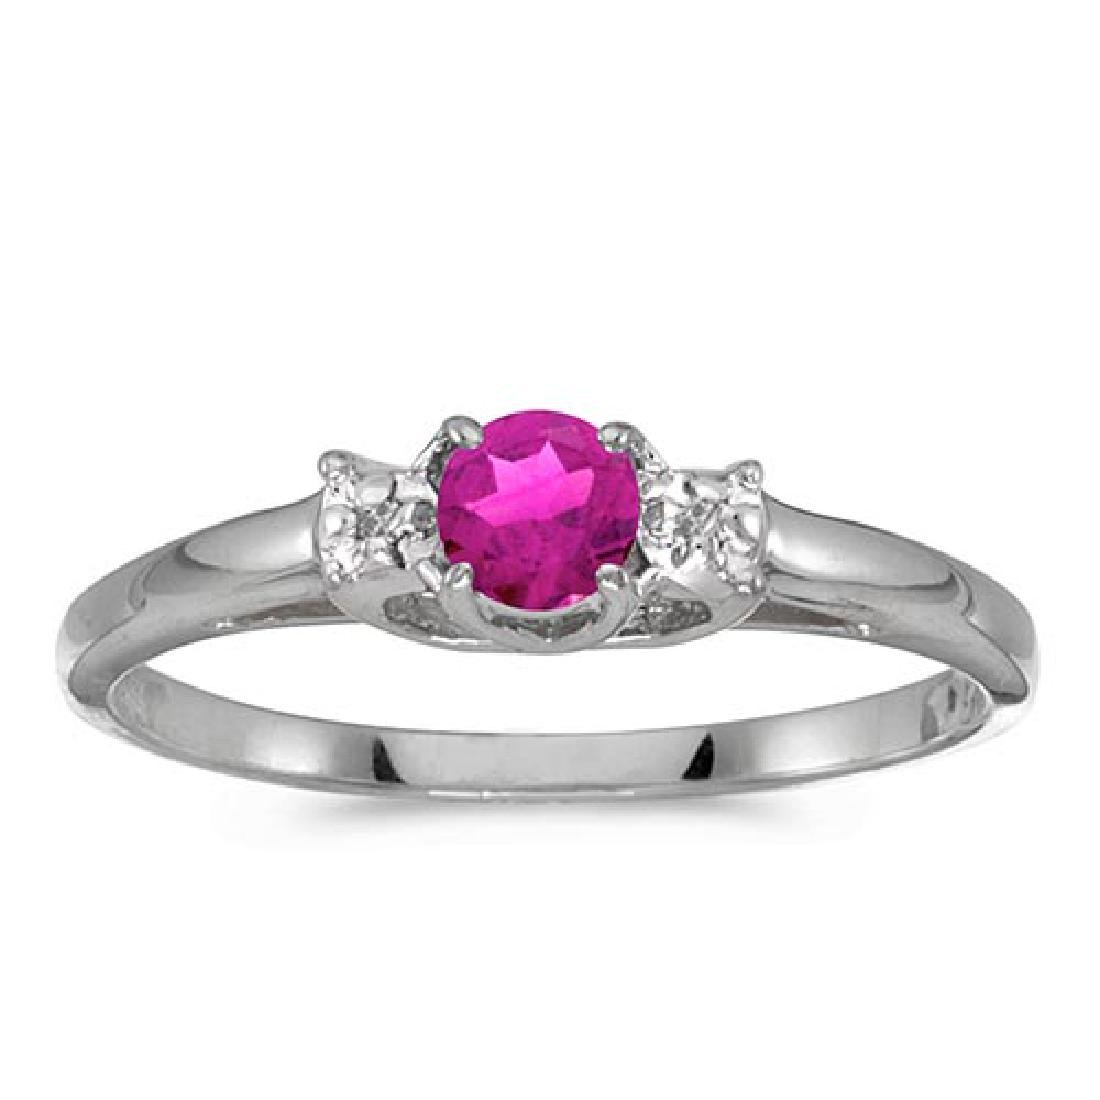 Certified 14k White Gold Round Pink Topaz And Diamond R